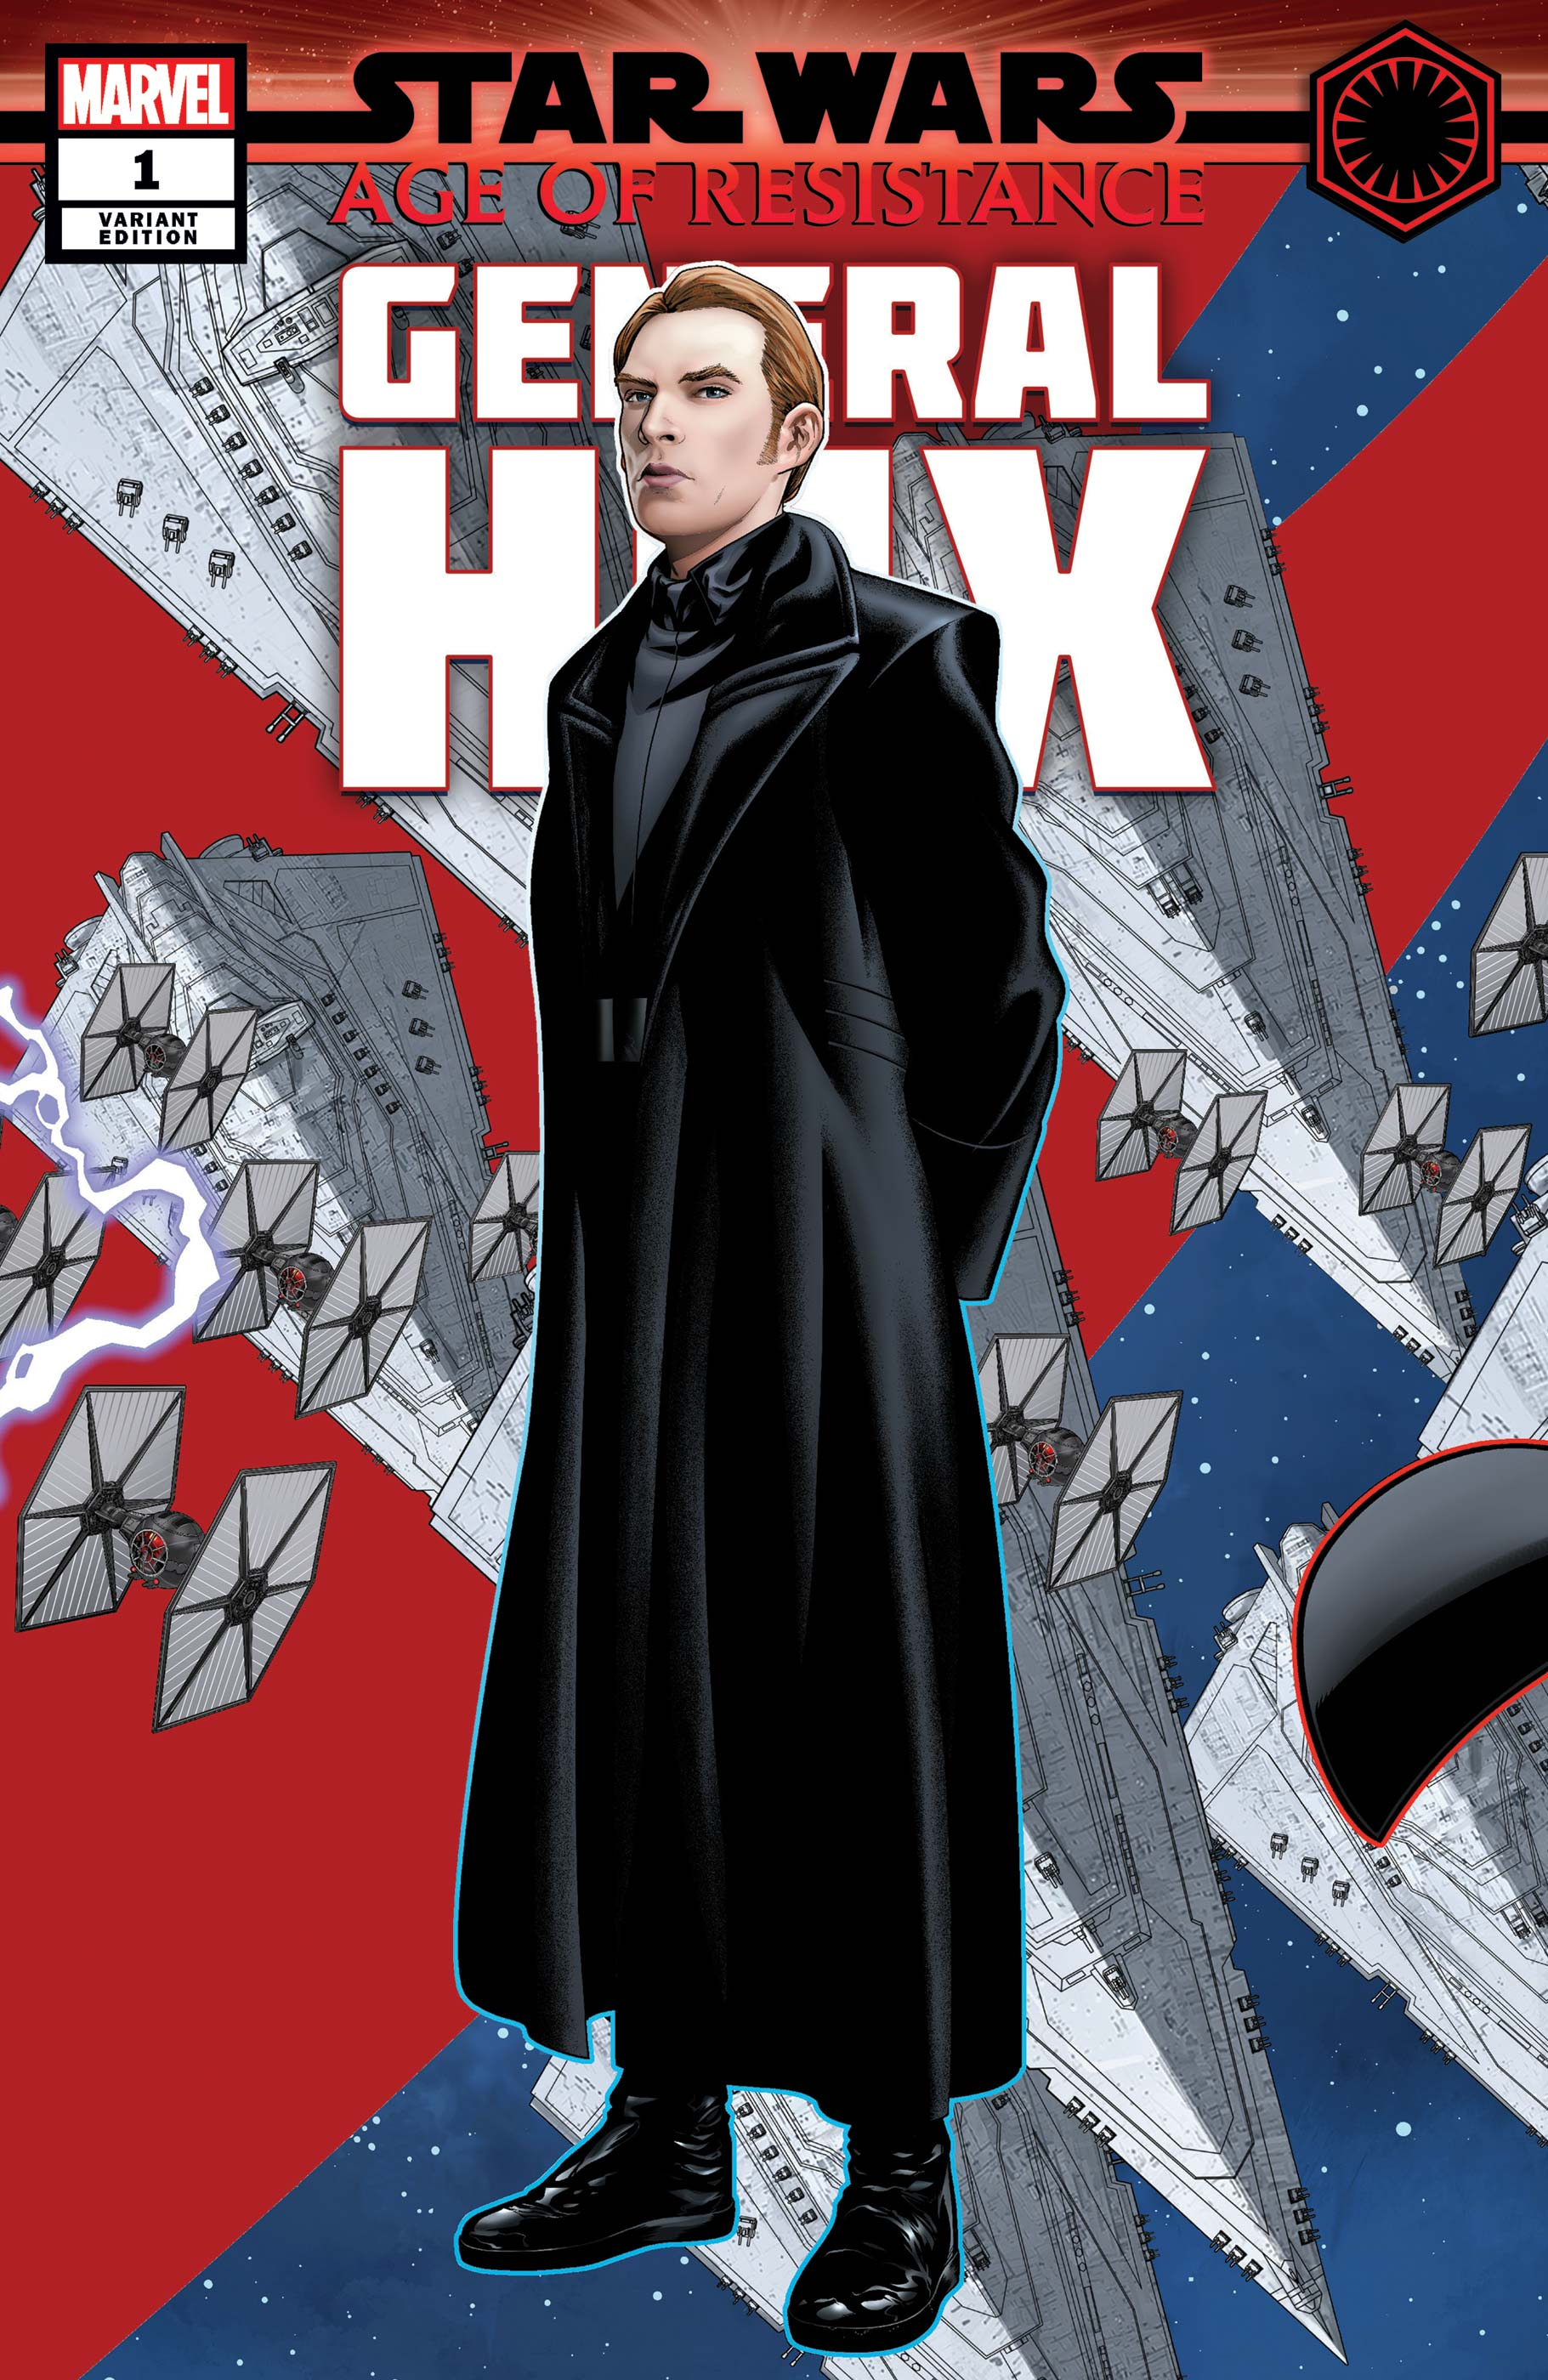 Star Wars: Age Of Resistance - General Hux (2019) #1 (Variant)